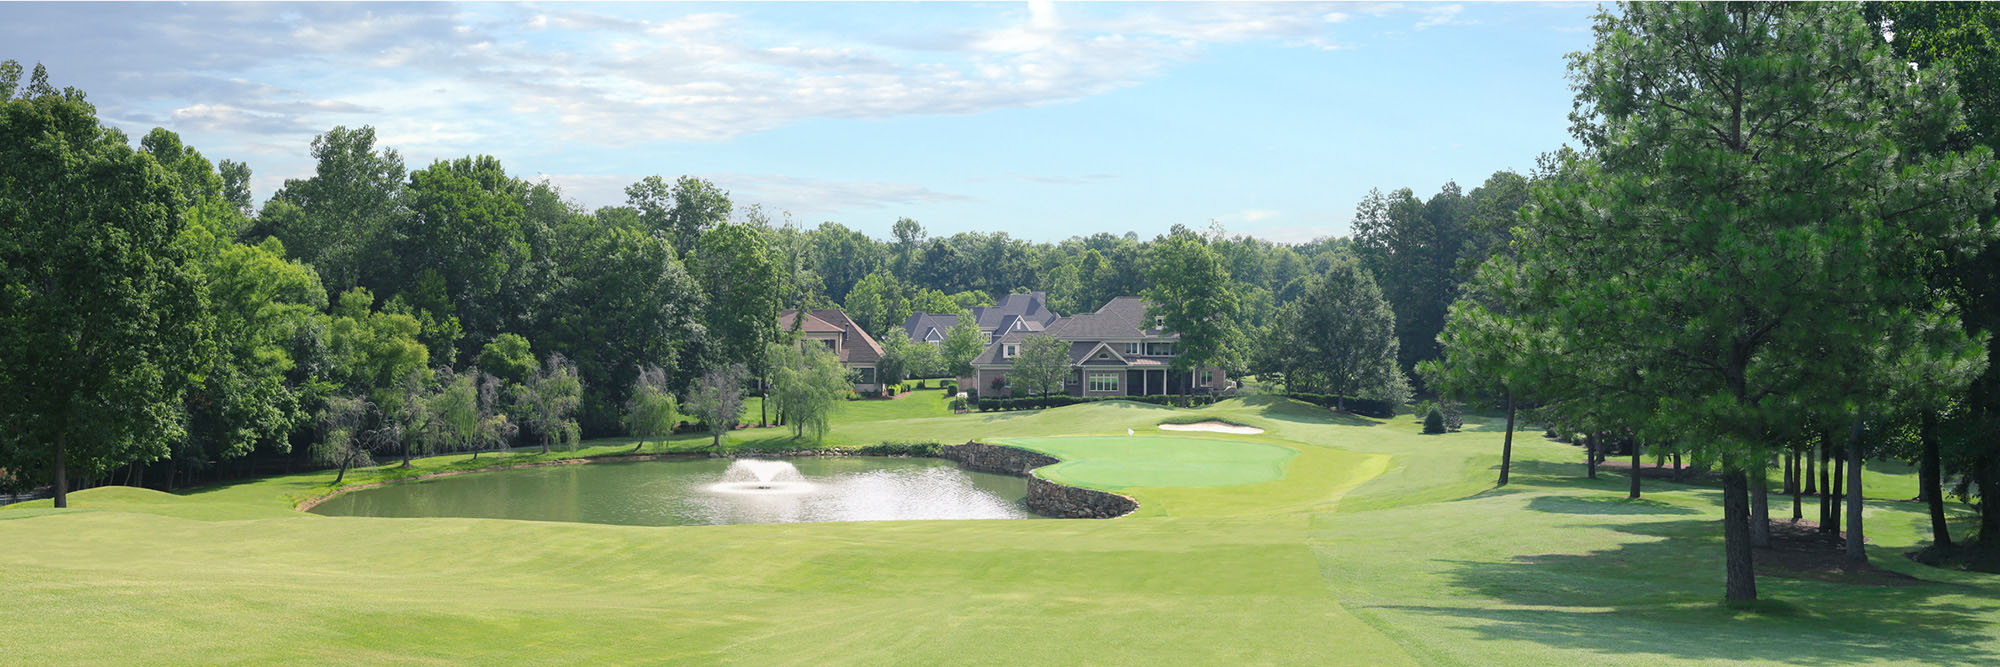 Golf Course Image - River Run Country Club No. 12